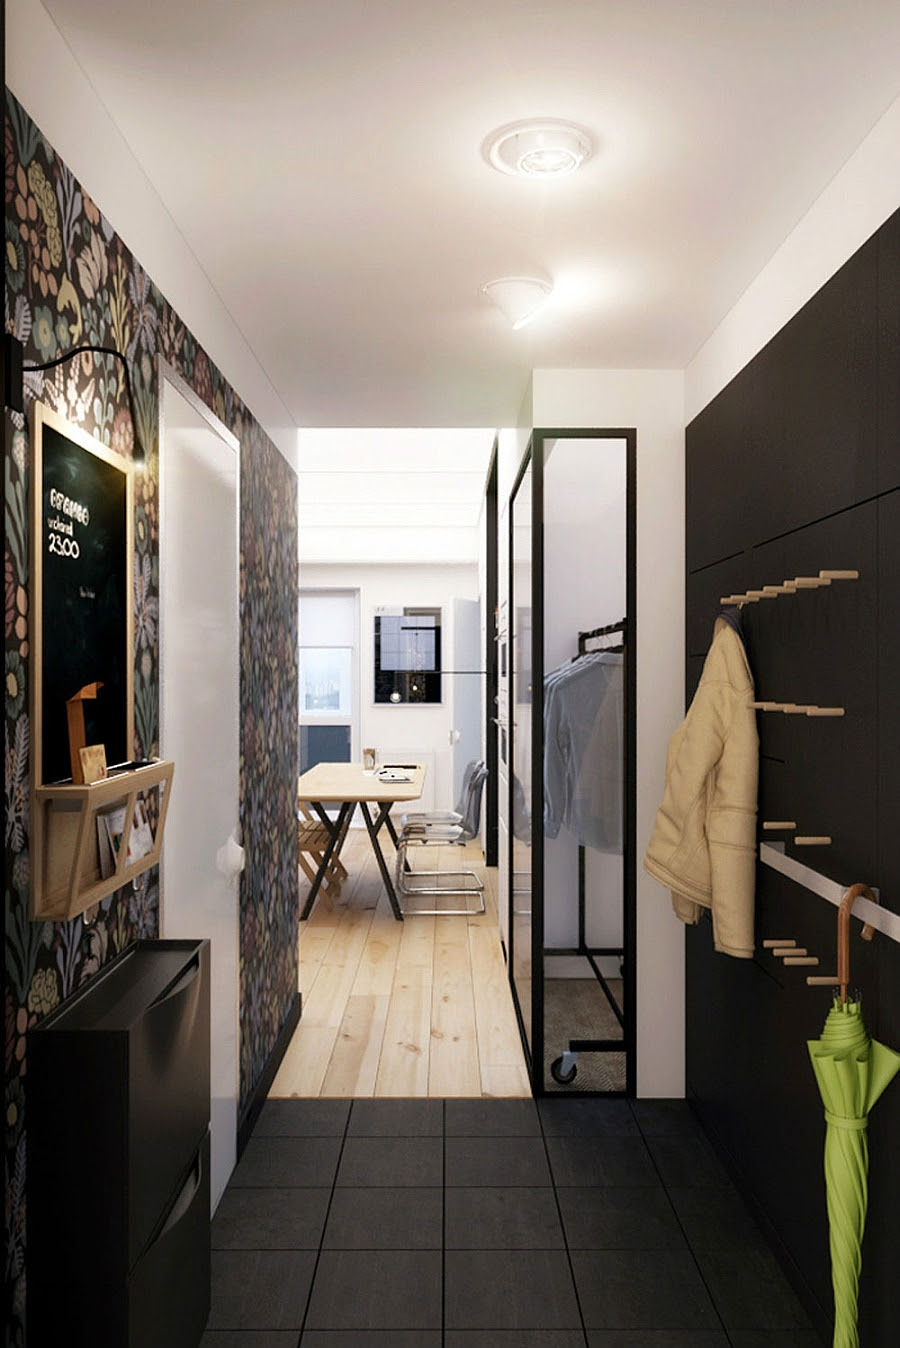 Tiny Apartment In Black And White Charms With Space-Saving Design